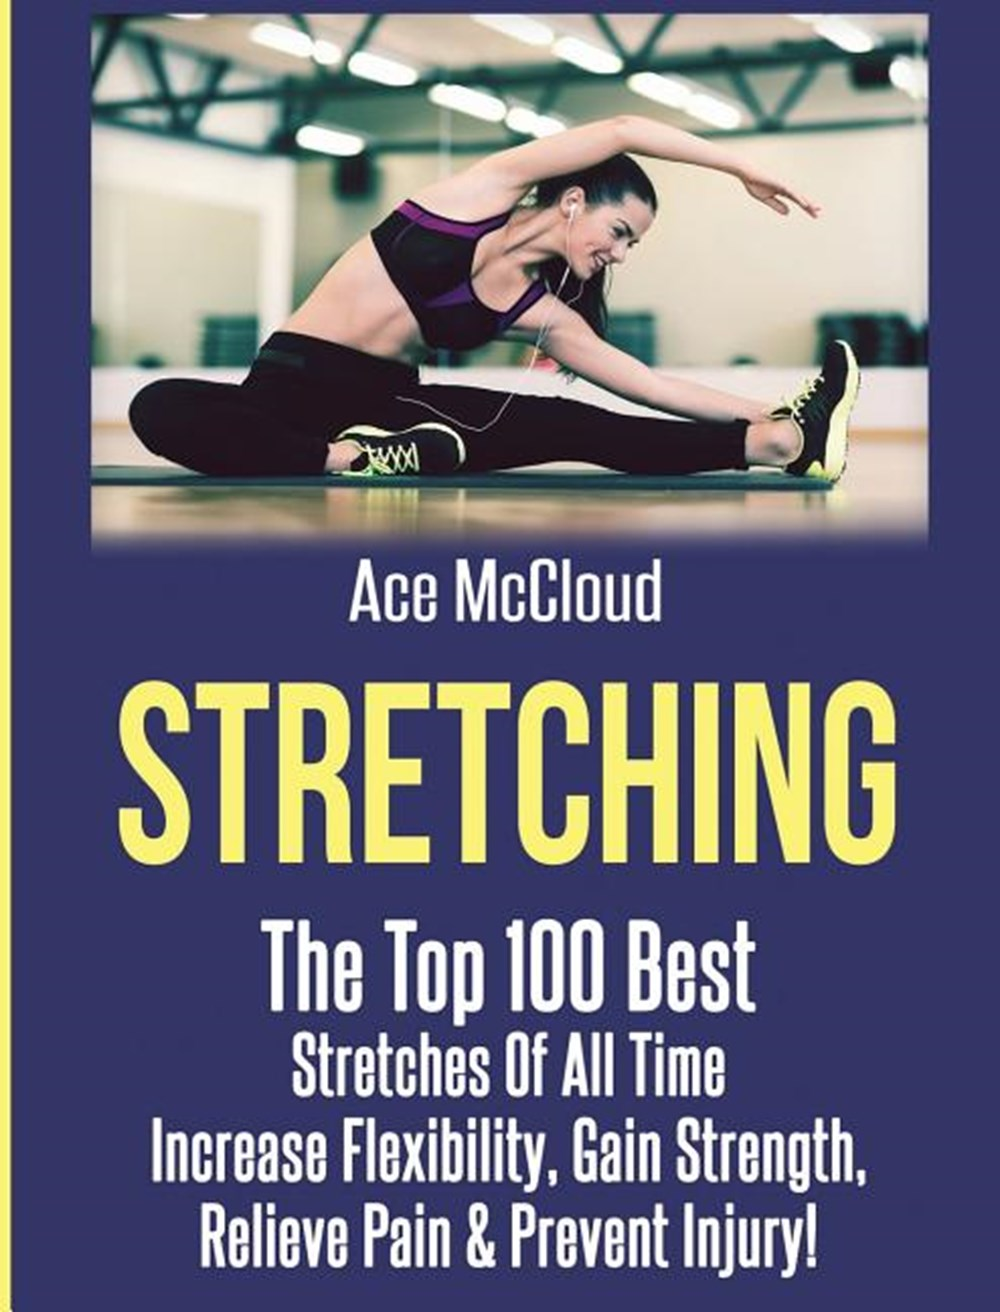 Stretching The Top 100 Best Stretches Of All Time: Increase Flexibility, Gain Strength, Relieve Pain